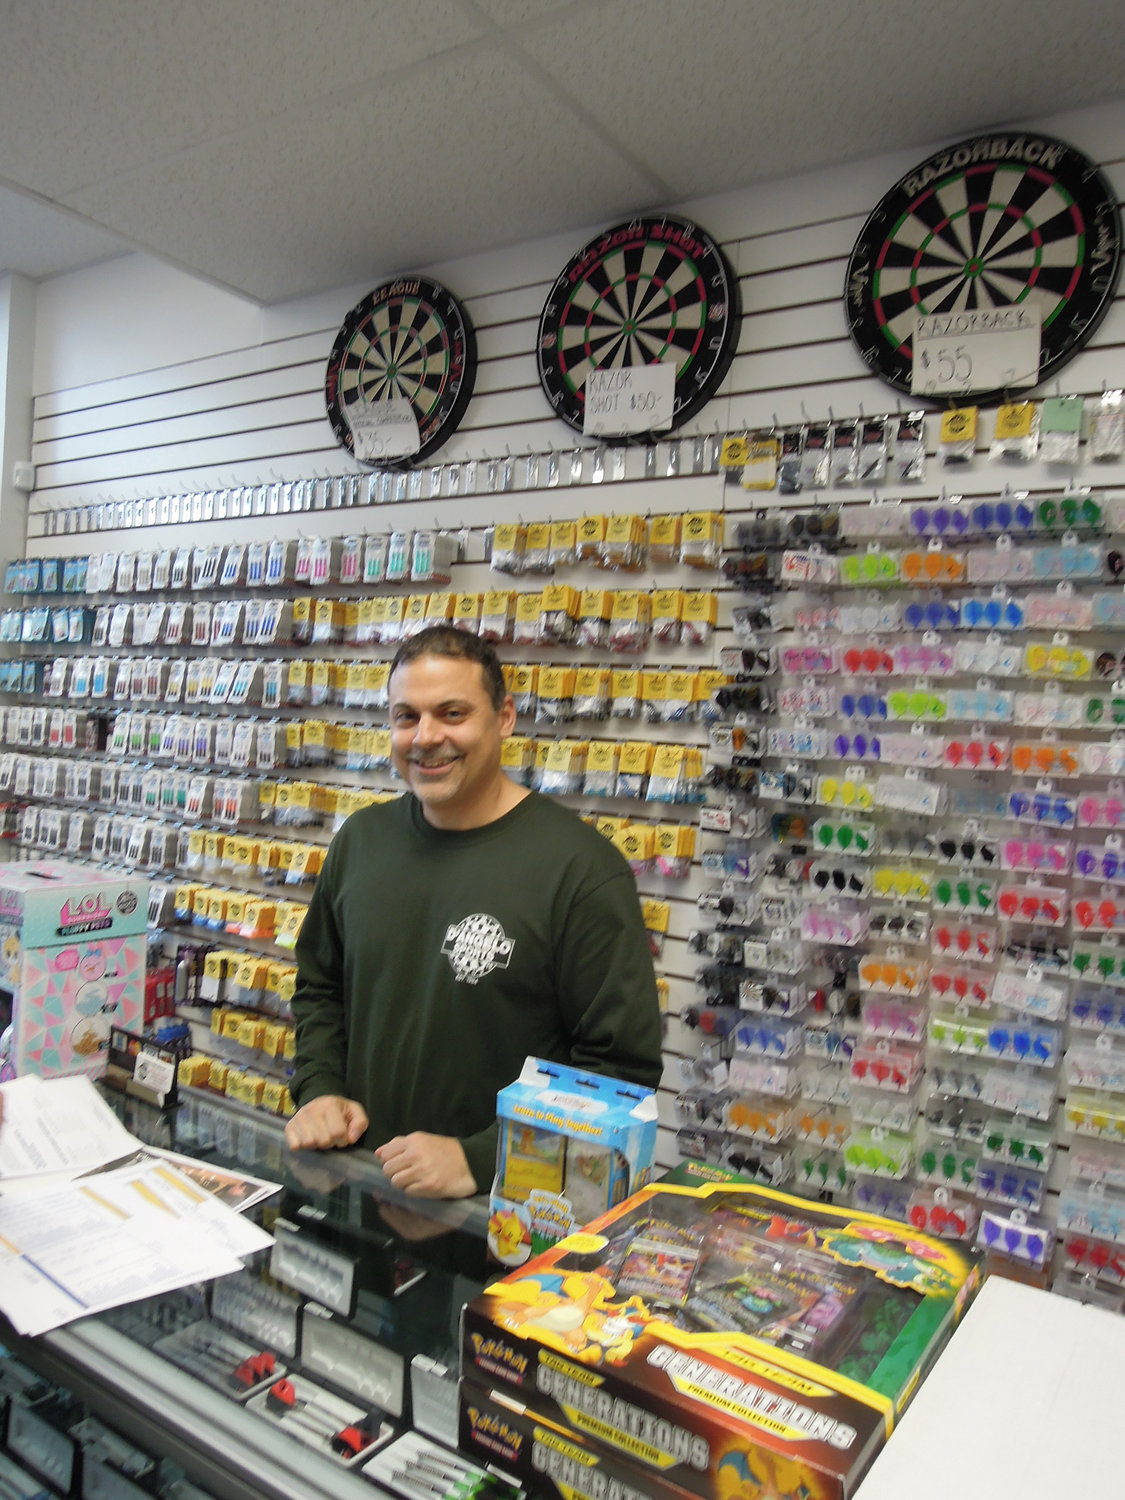 Mike D'Angelo, of D'Angelo Sporting Goods in Wantagh, opted for caution, as he said the rules governing Phase I openings were as yet unclear.